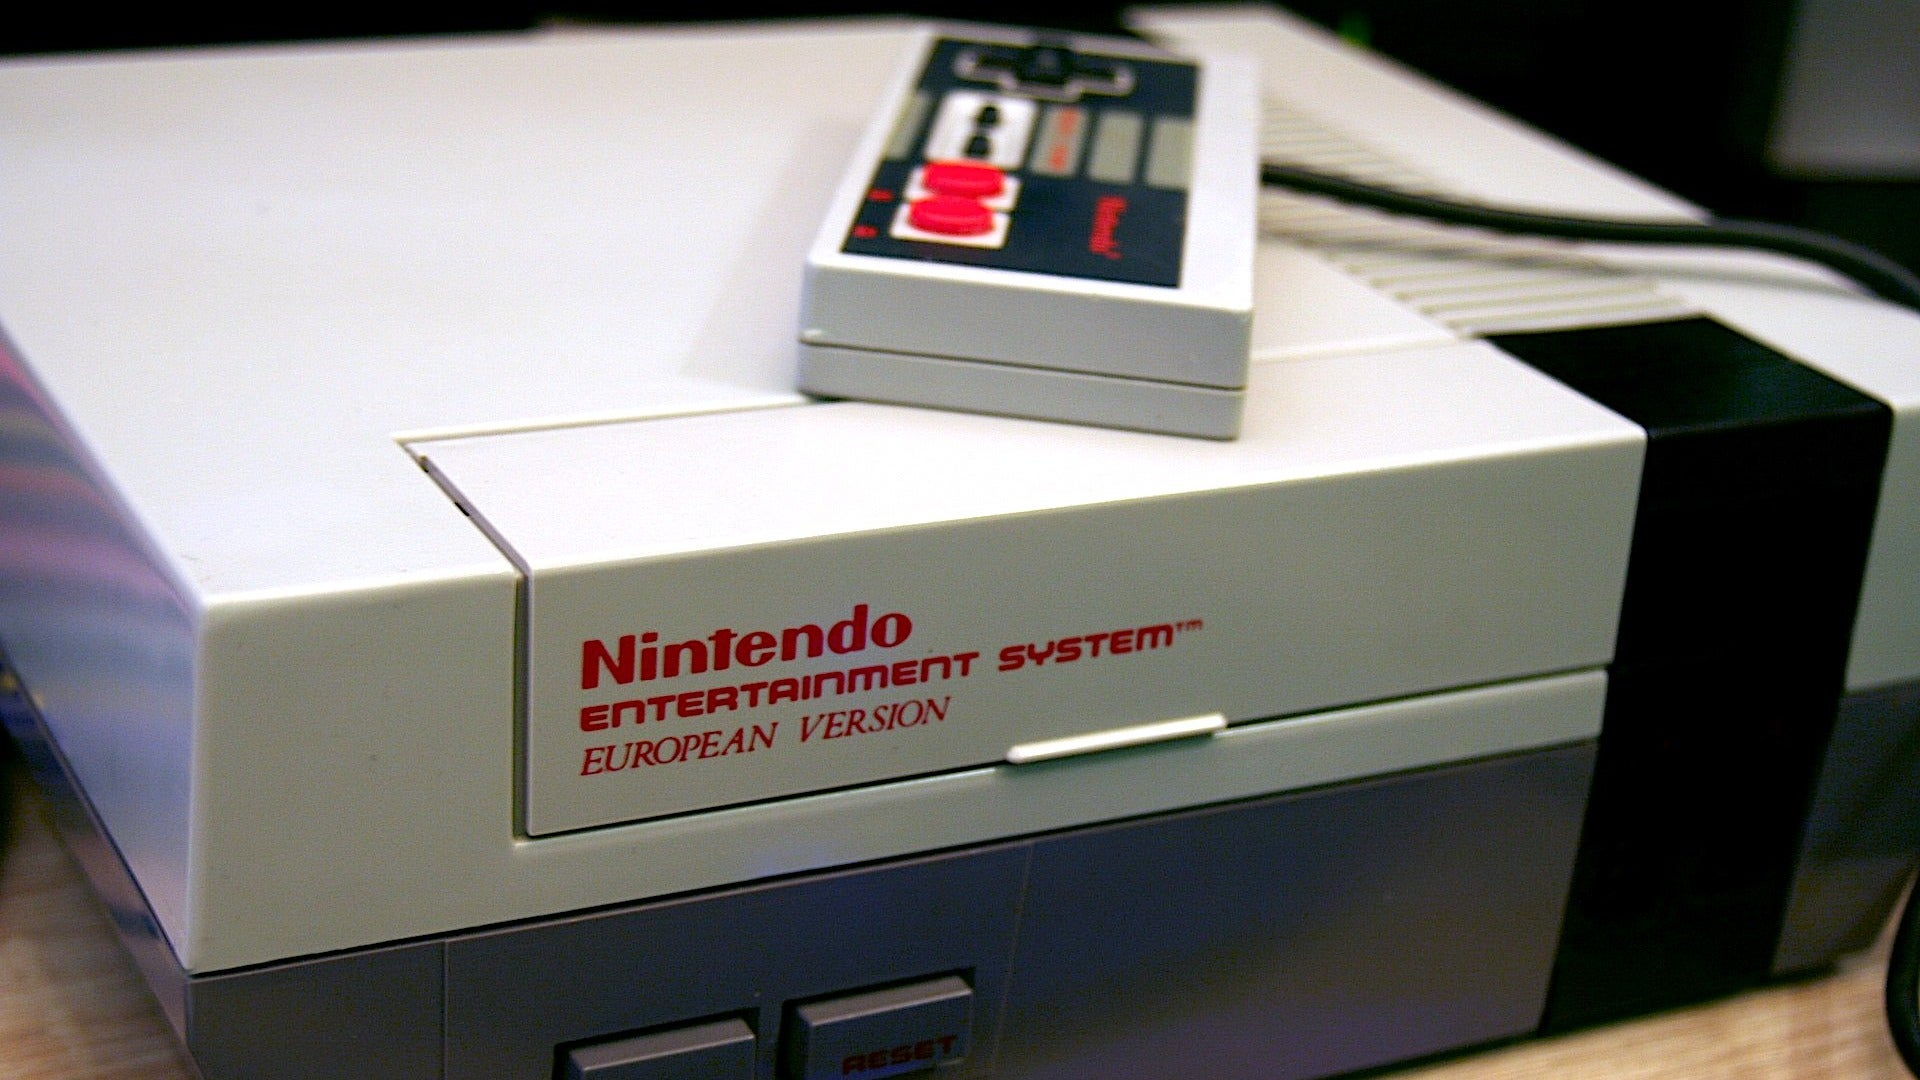 NES Isn't Pronounced 'N.E.S.'